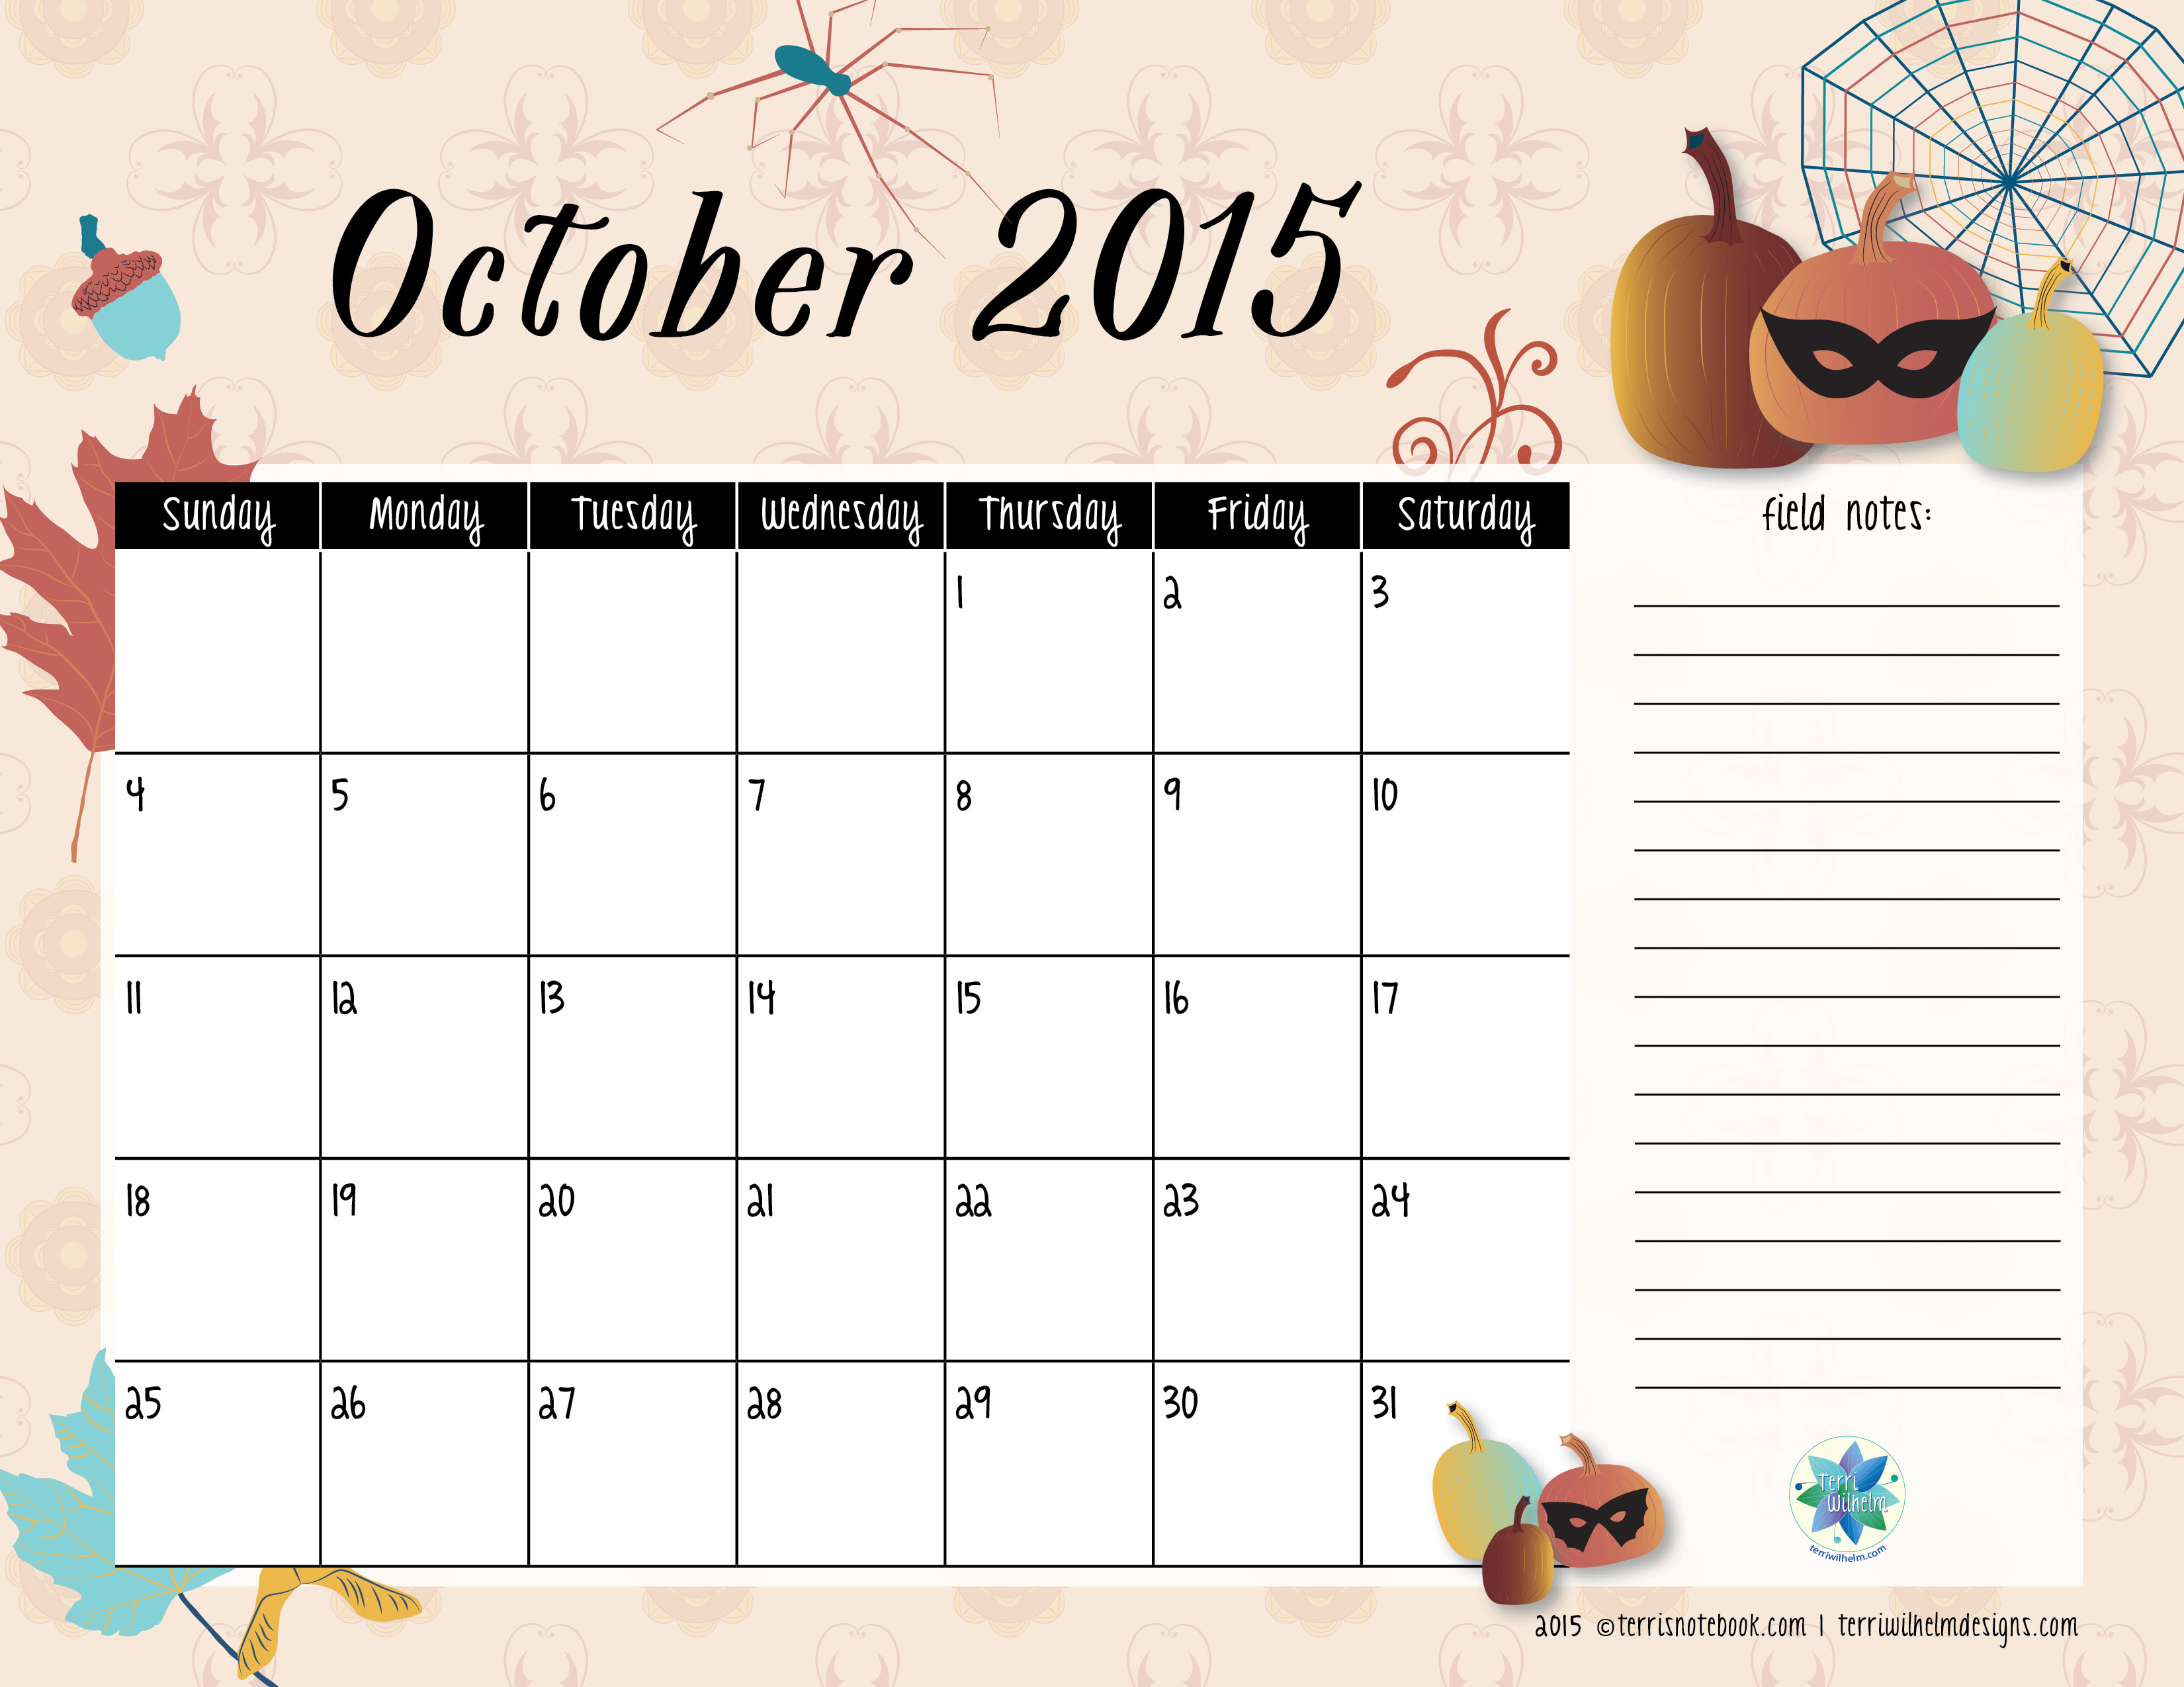 Clipart calendar october 2015 clip art royalty free library calendar October clip art royalty free library